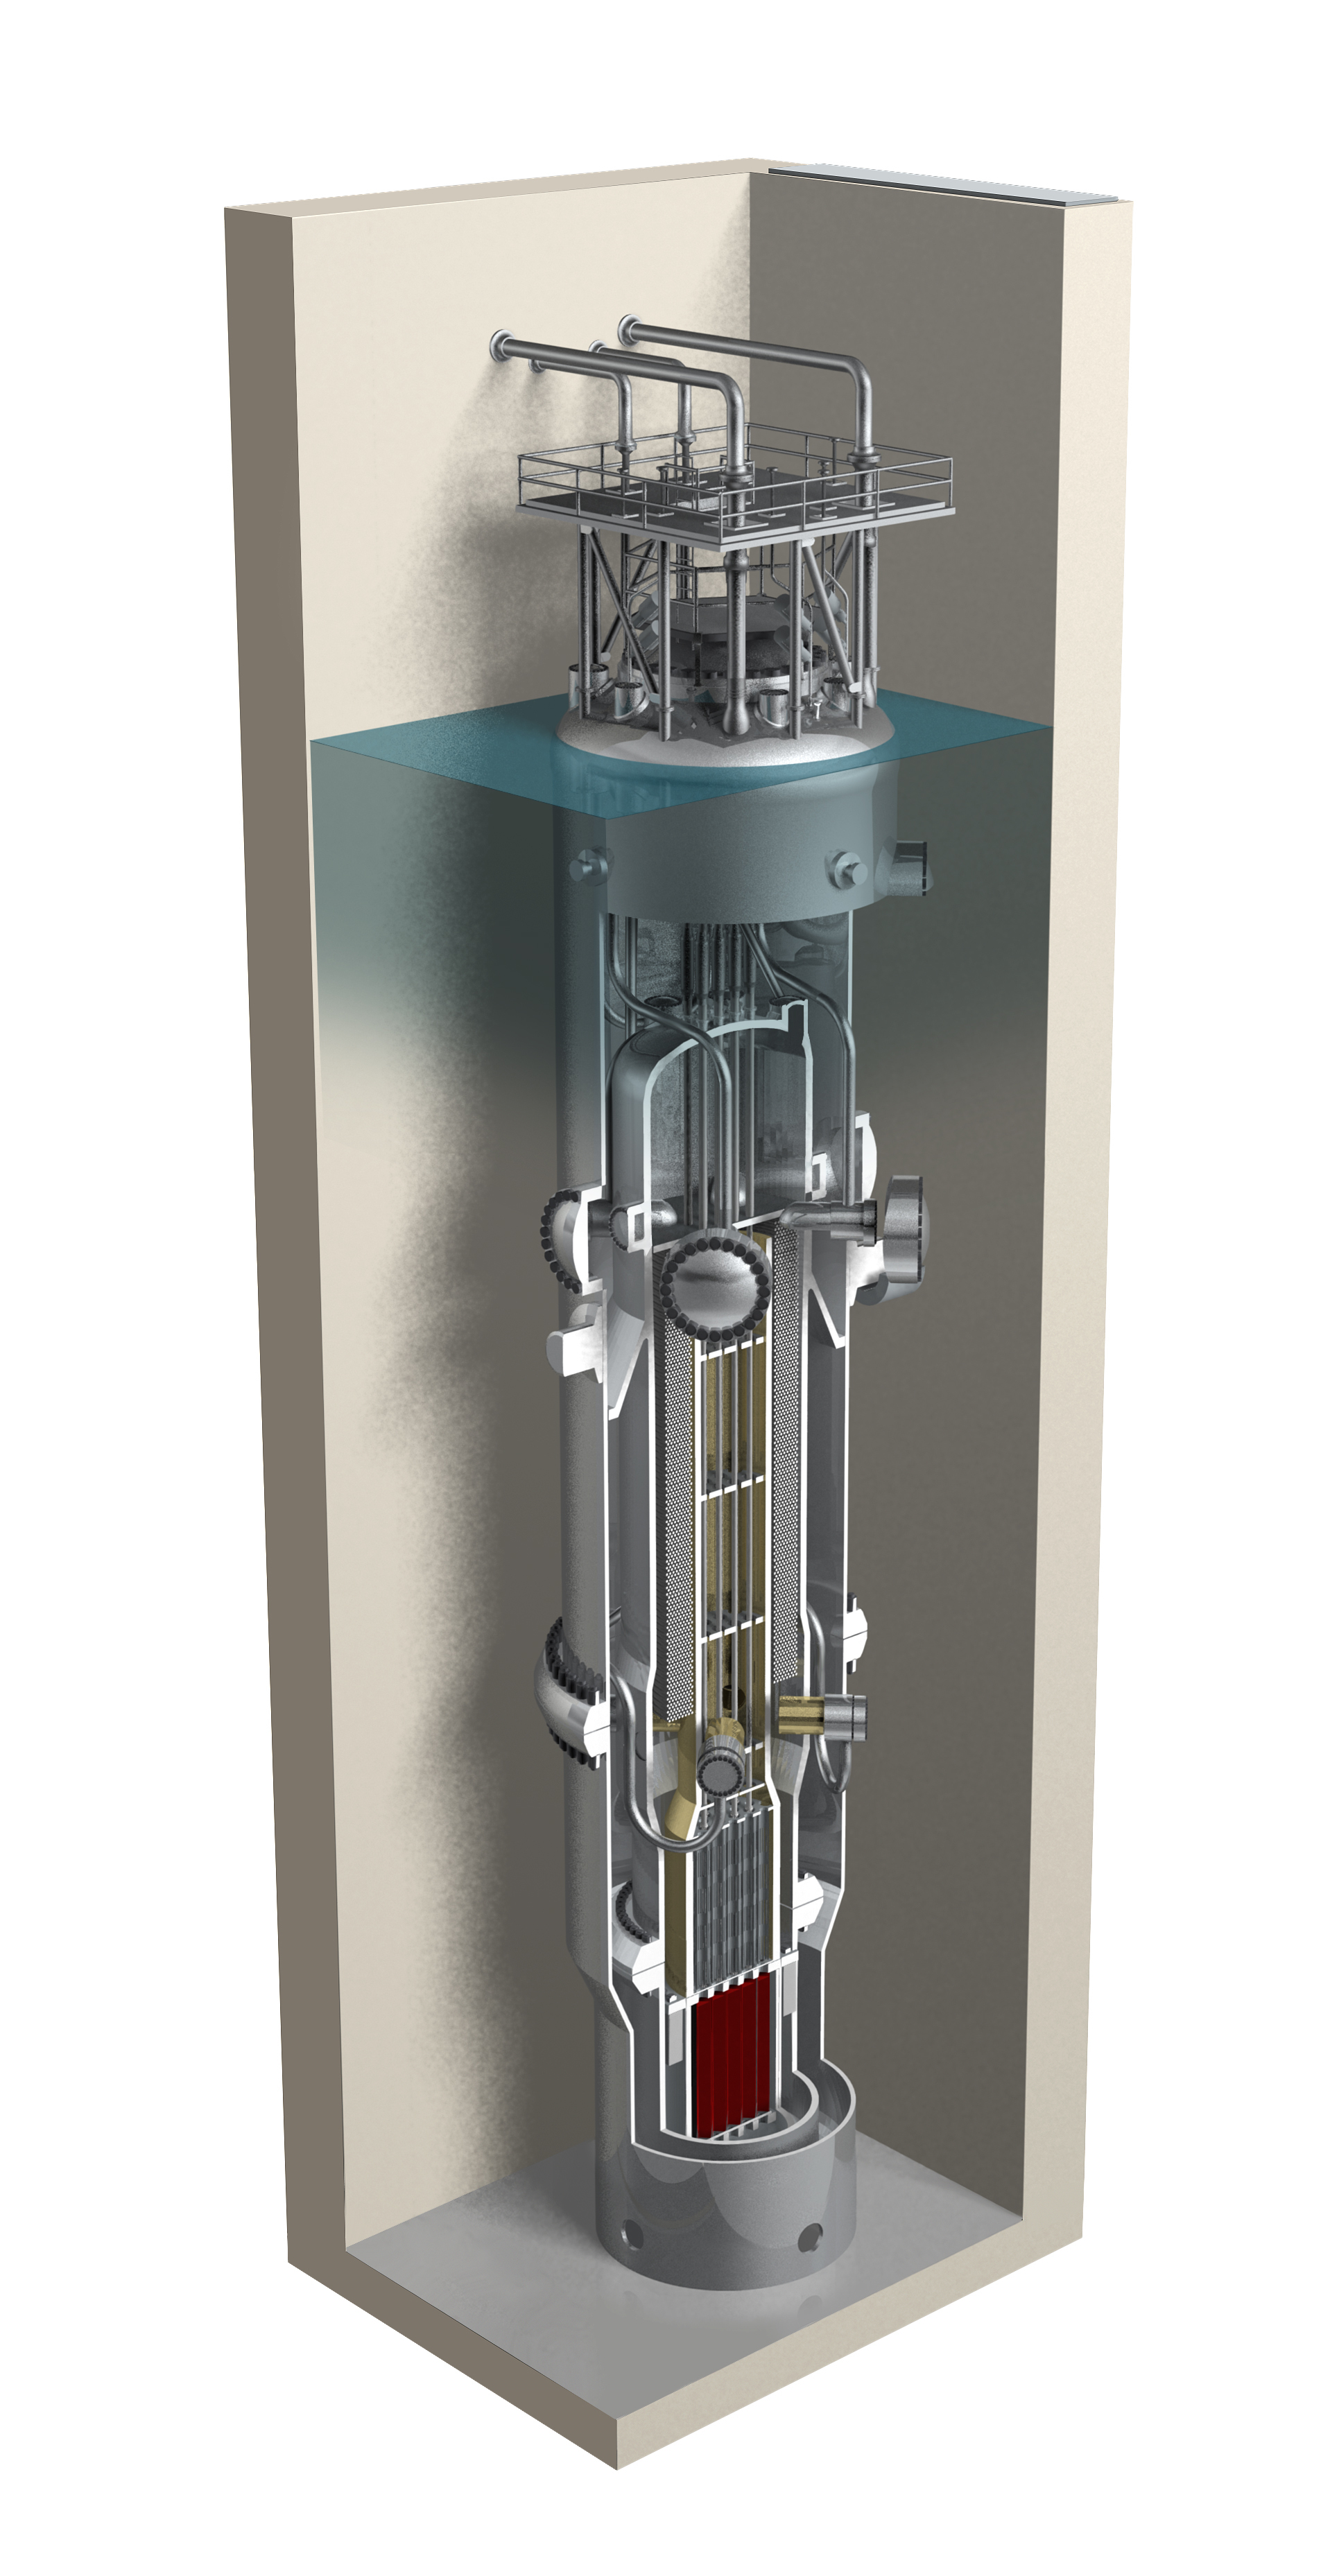 Miniaturized Nuclear Power Plant? U.S. Reviewing Proposed Design